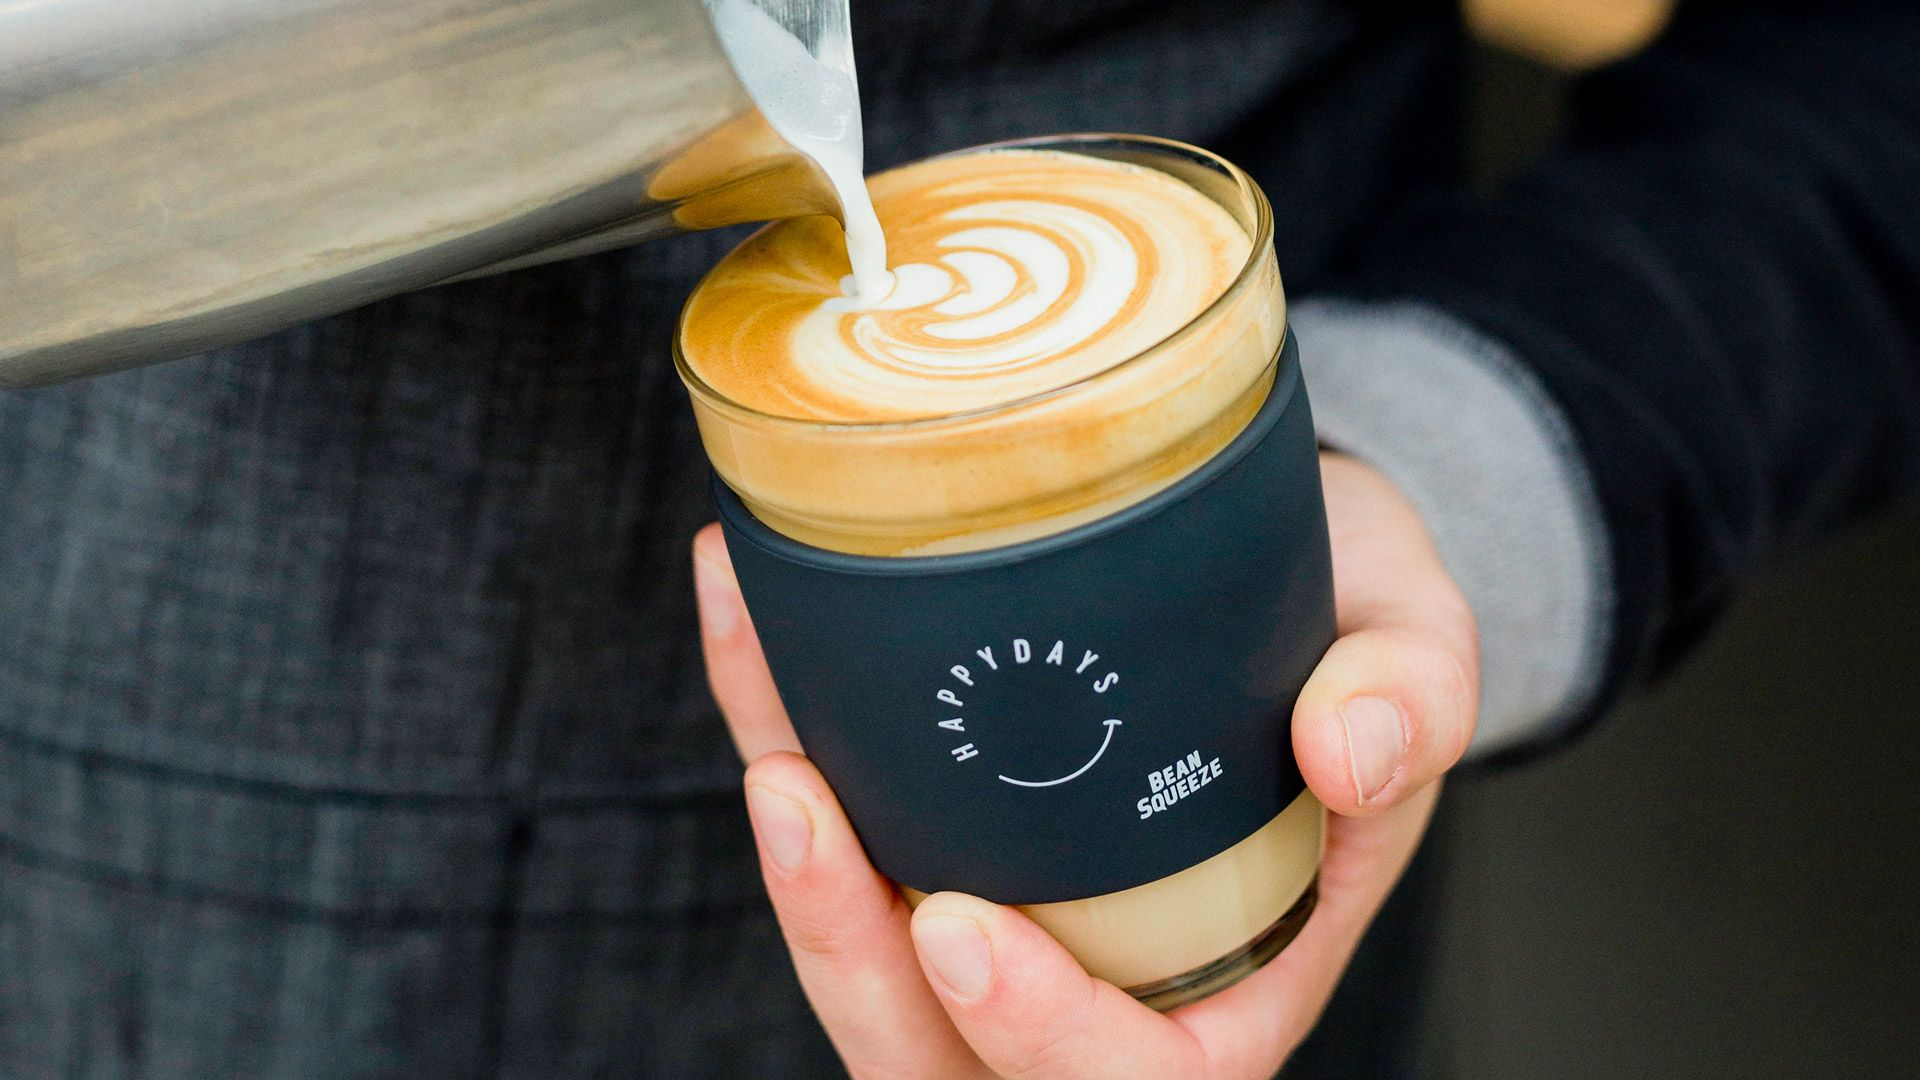 Everything We Do Is Guided By Our Philosophy Of Leave Happier Whether It S Your Morning Coffee Just The Way You Like It Coffee Food Items Morning Coffee